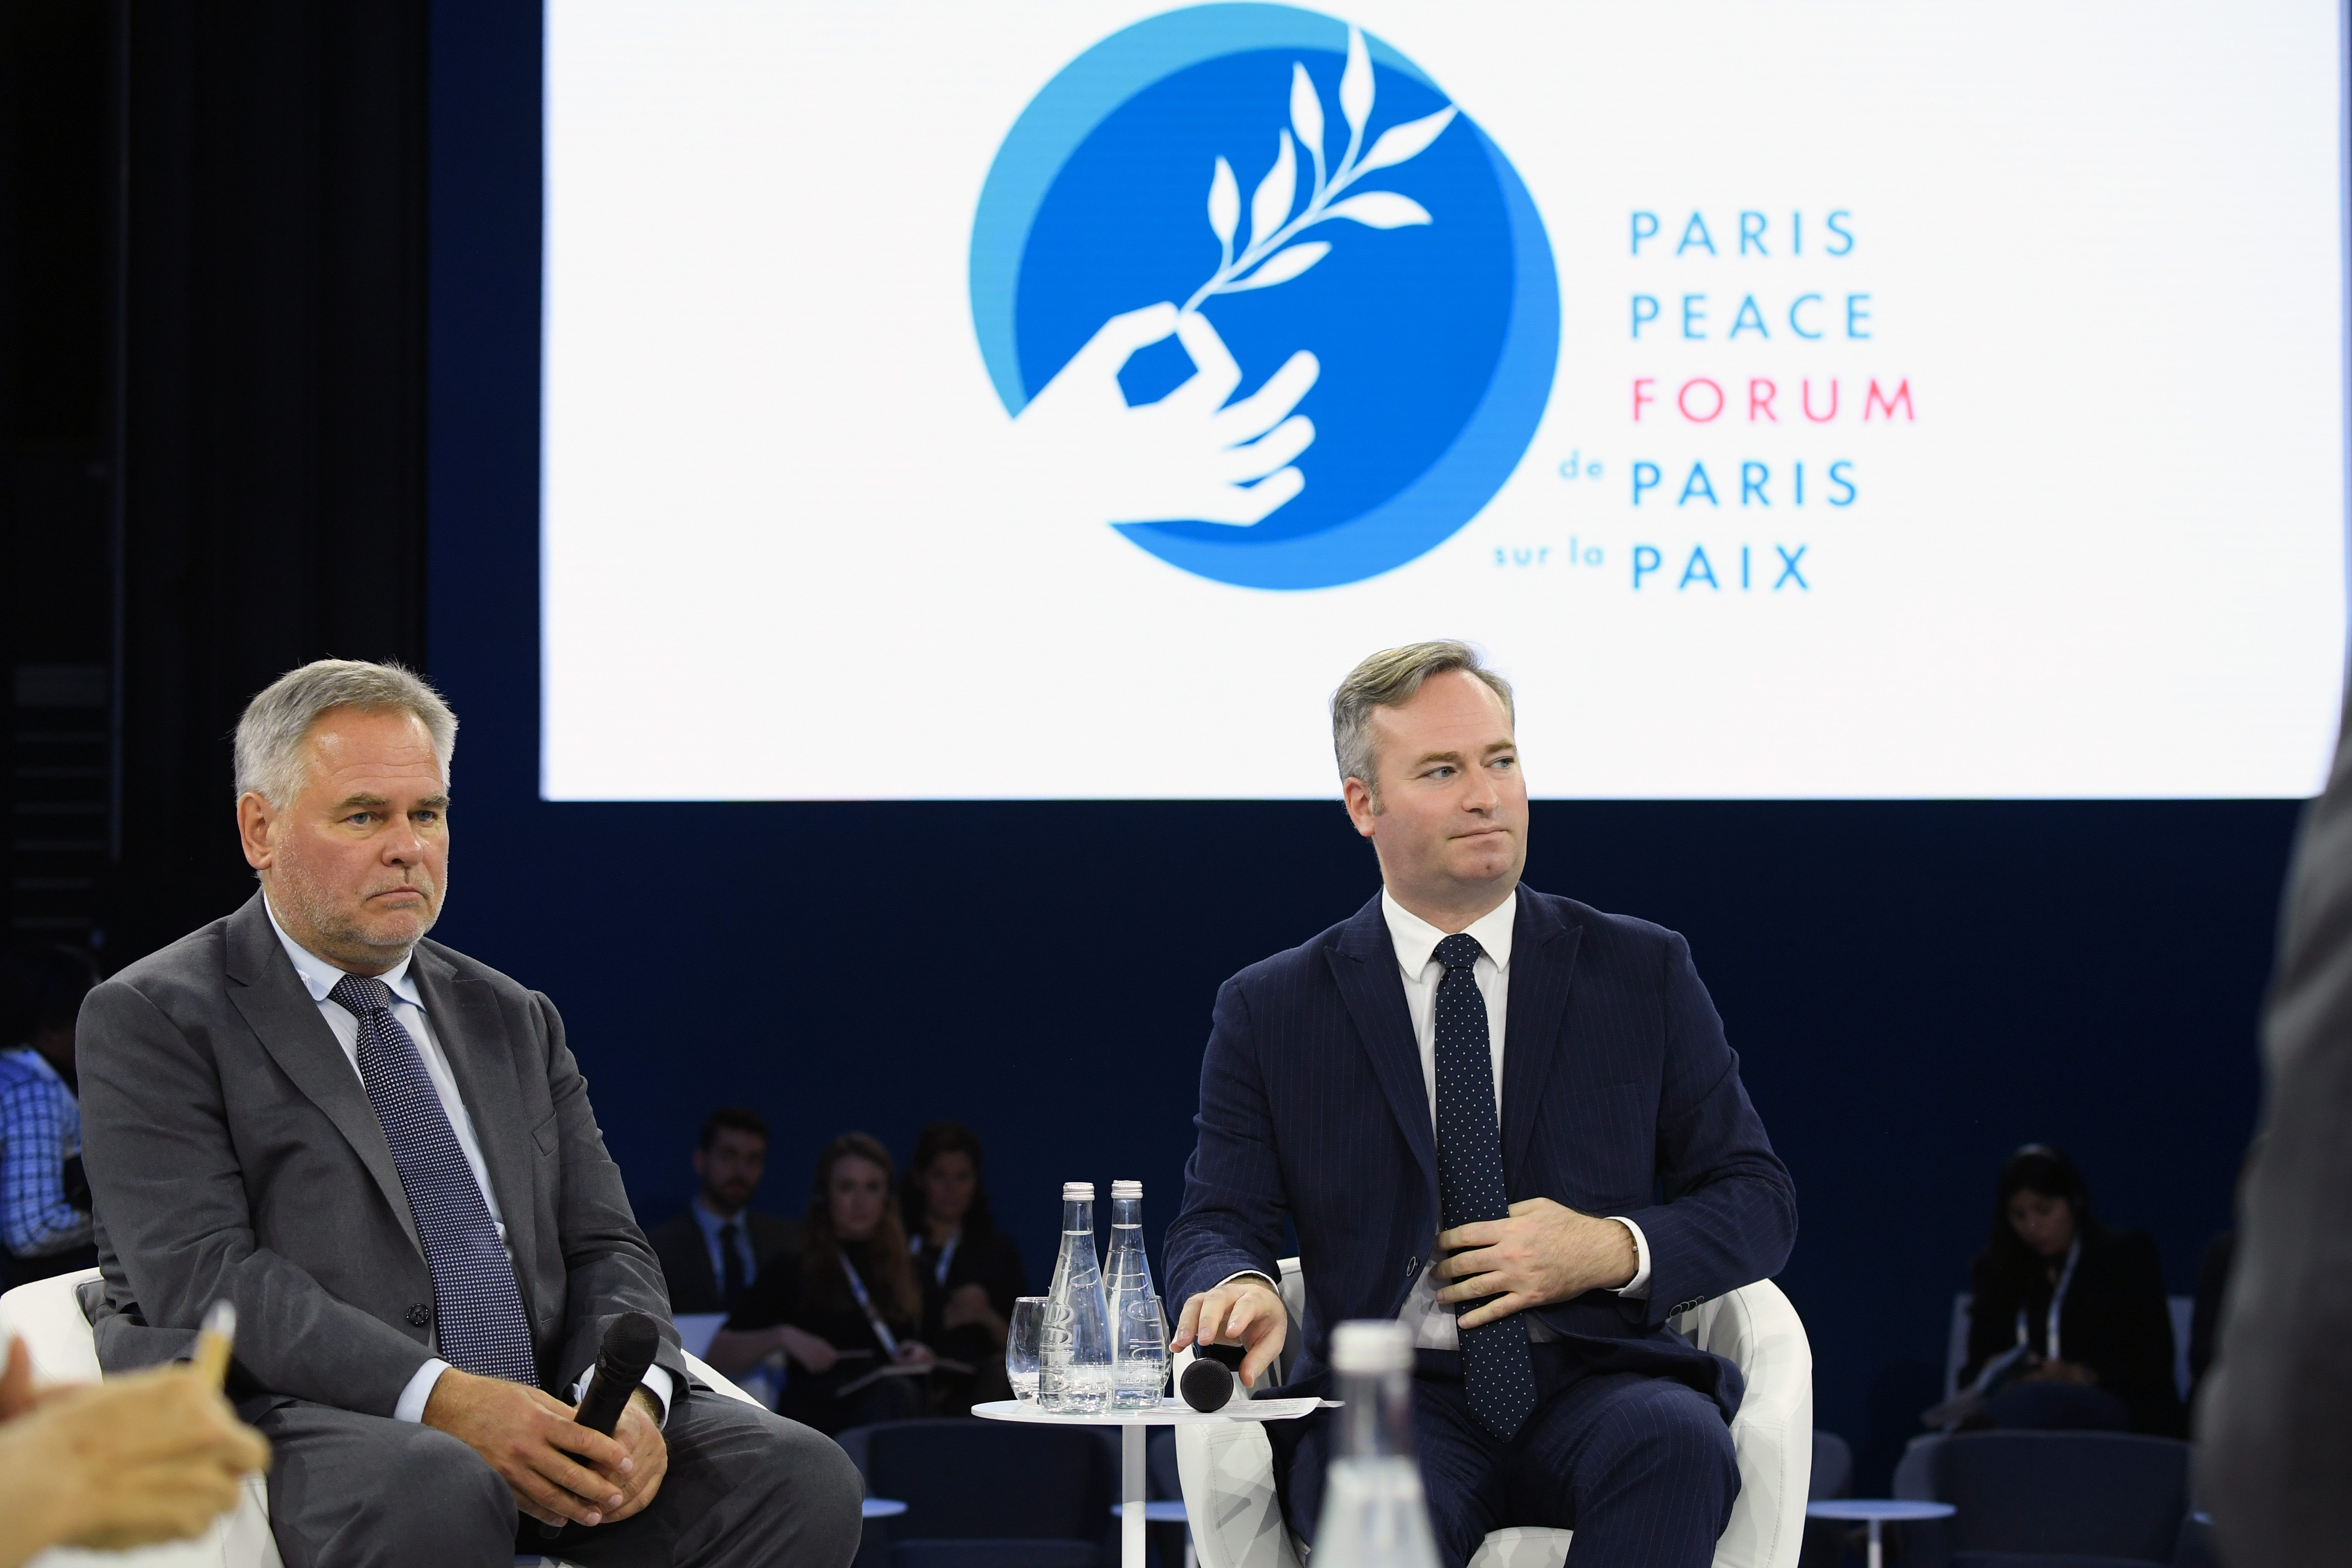 PARIS, FRANCE - NOVEMBER 12: Eugene Kaspersky and Jean-Baptiste Lemoyne attend a Cyber Security panel at the PPF. The Paris Peace Forum (PPF) is a global platform for governance projects. Kaspersky is one of the main partner of this high-level-conference at Grande Halle de La Villette on November 12, 2019 in Paris, France. (Photo by Pascal Le Segretain/Getty Images for Kaspersky )